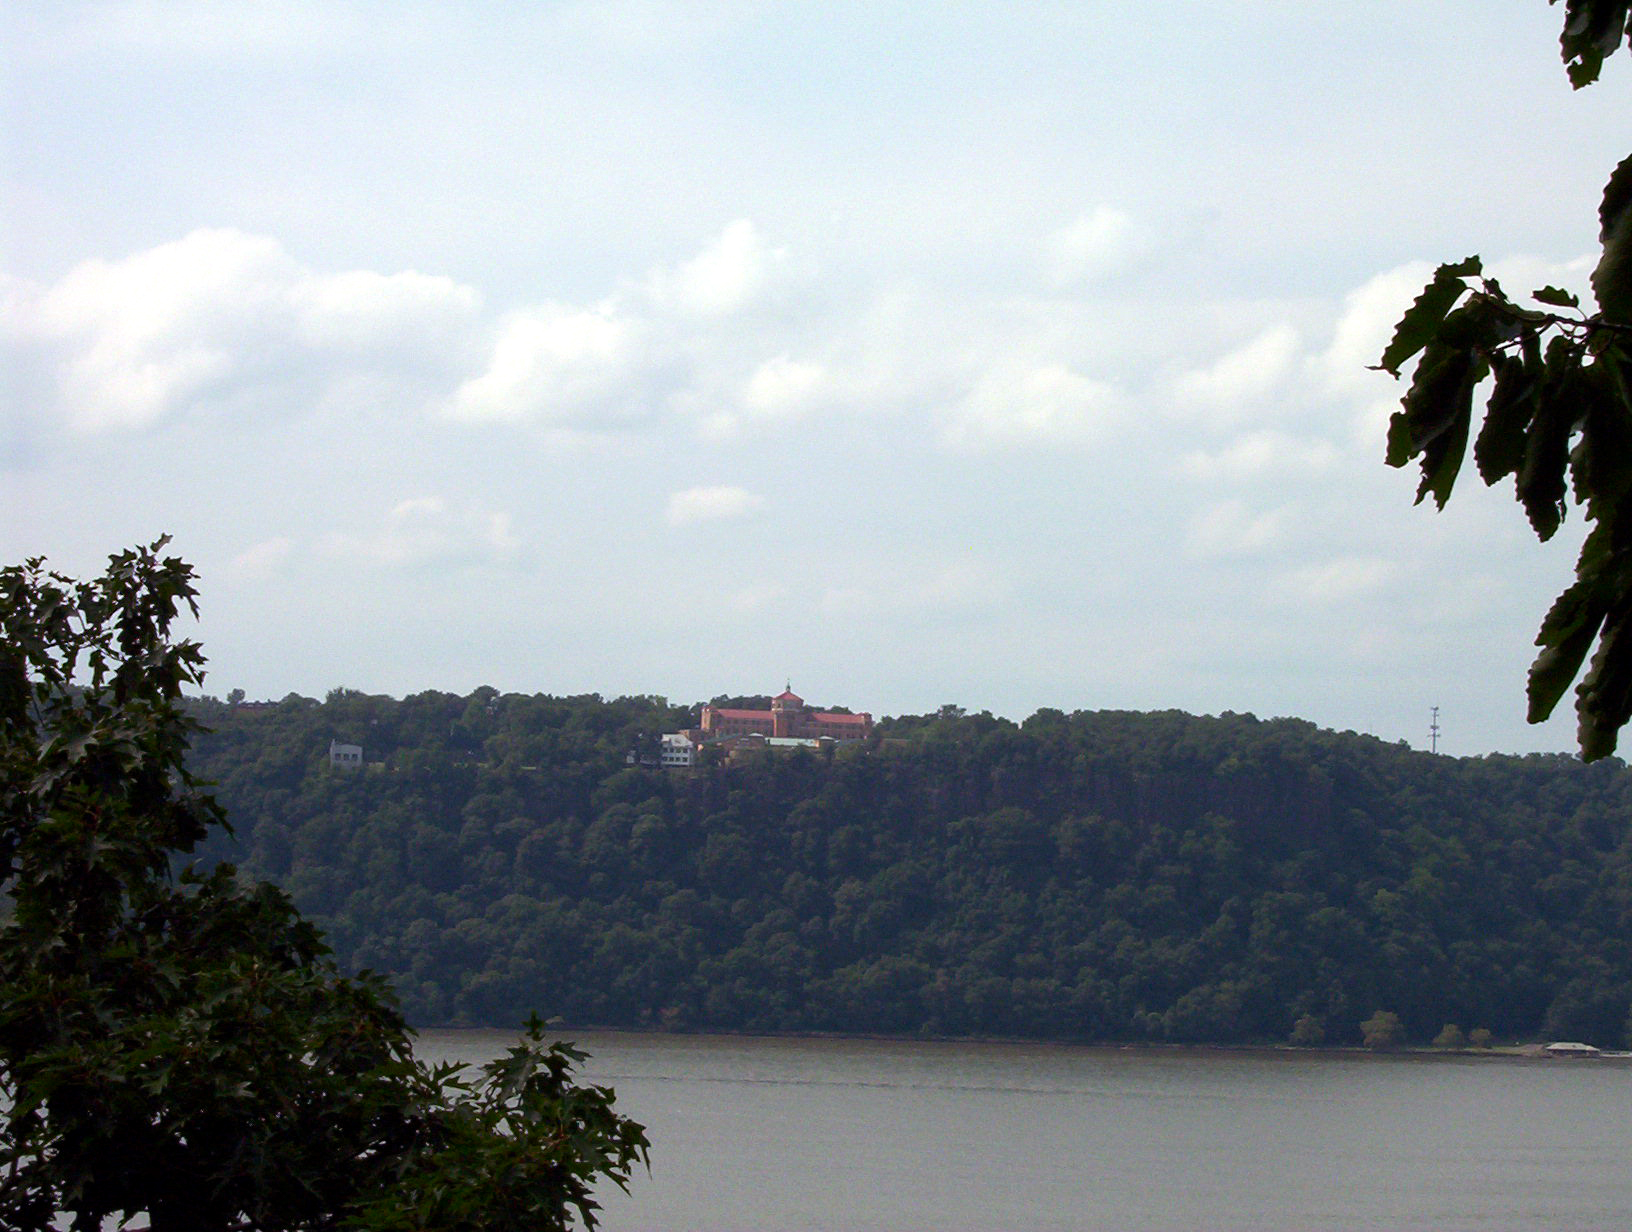 joelhacker mansion house on a hill overlooking a lake trees green royalty-free